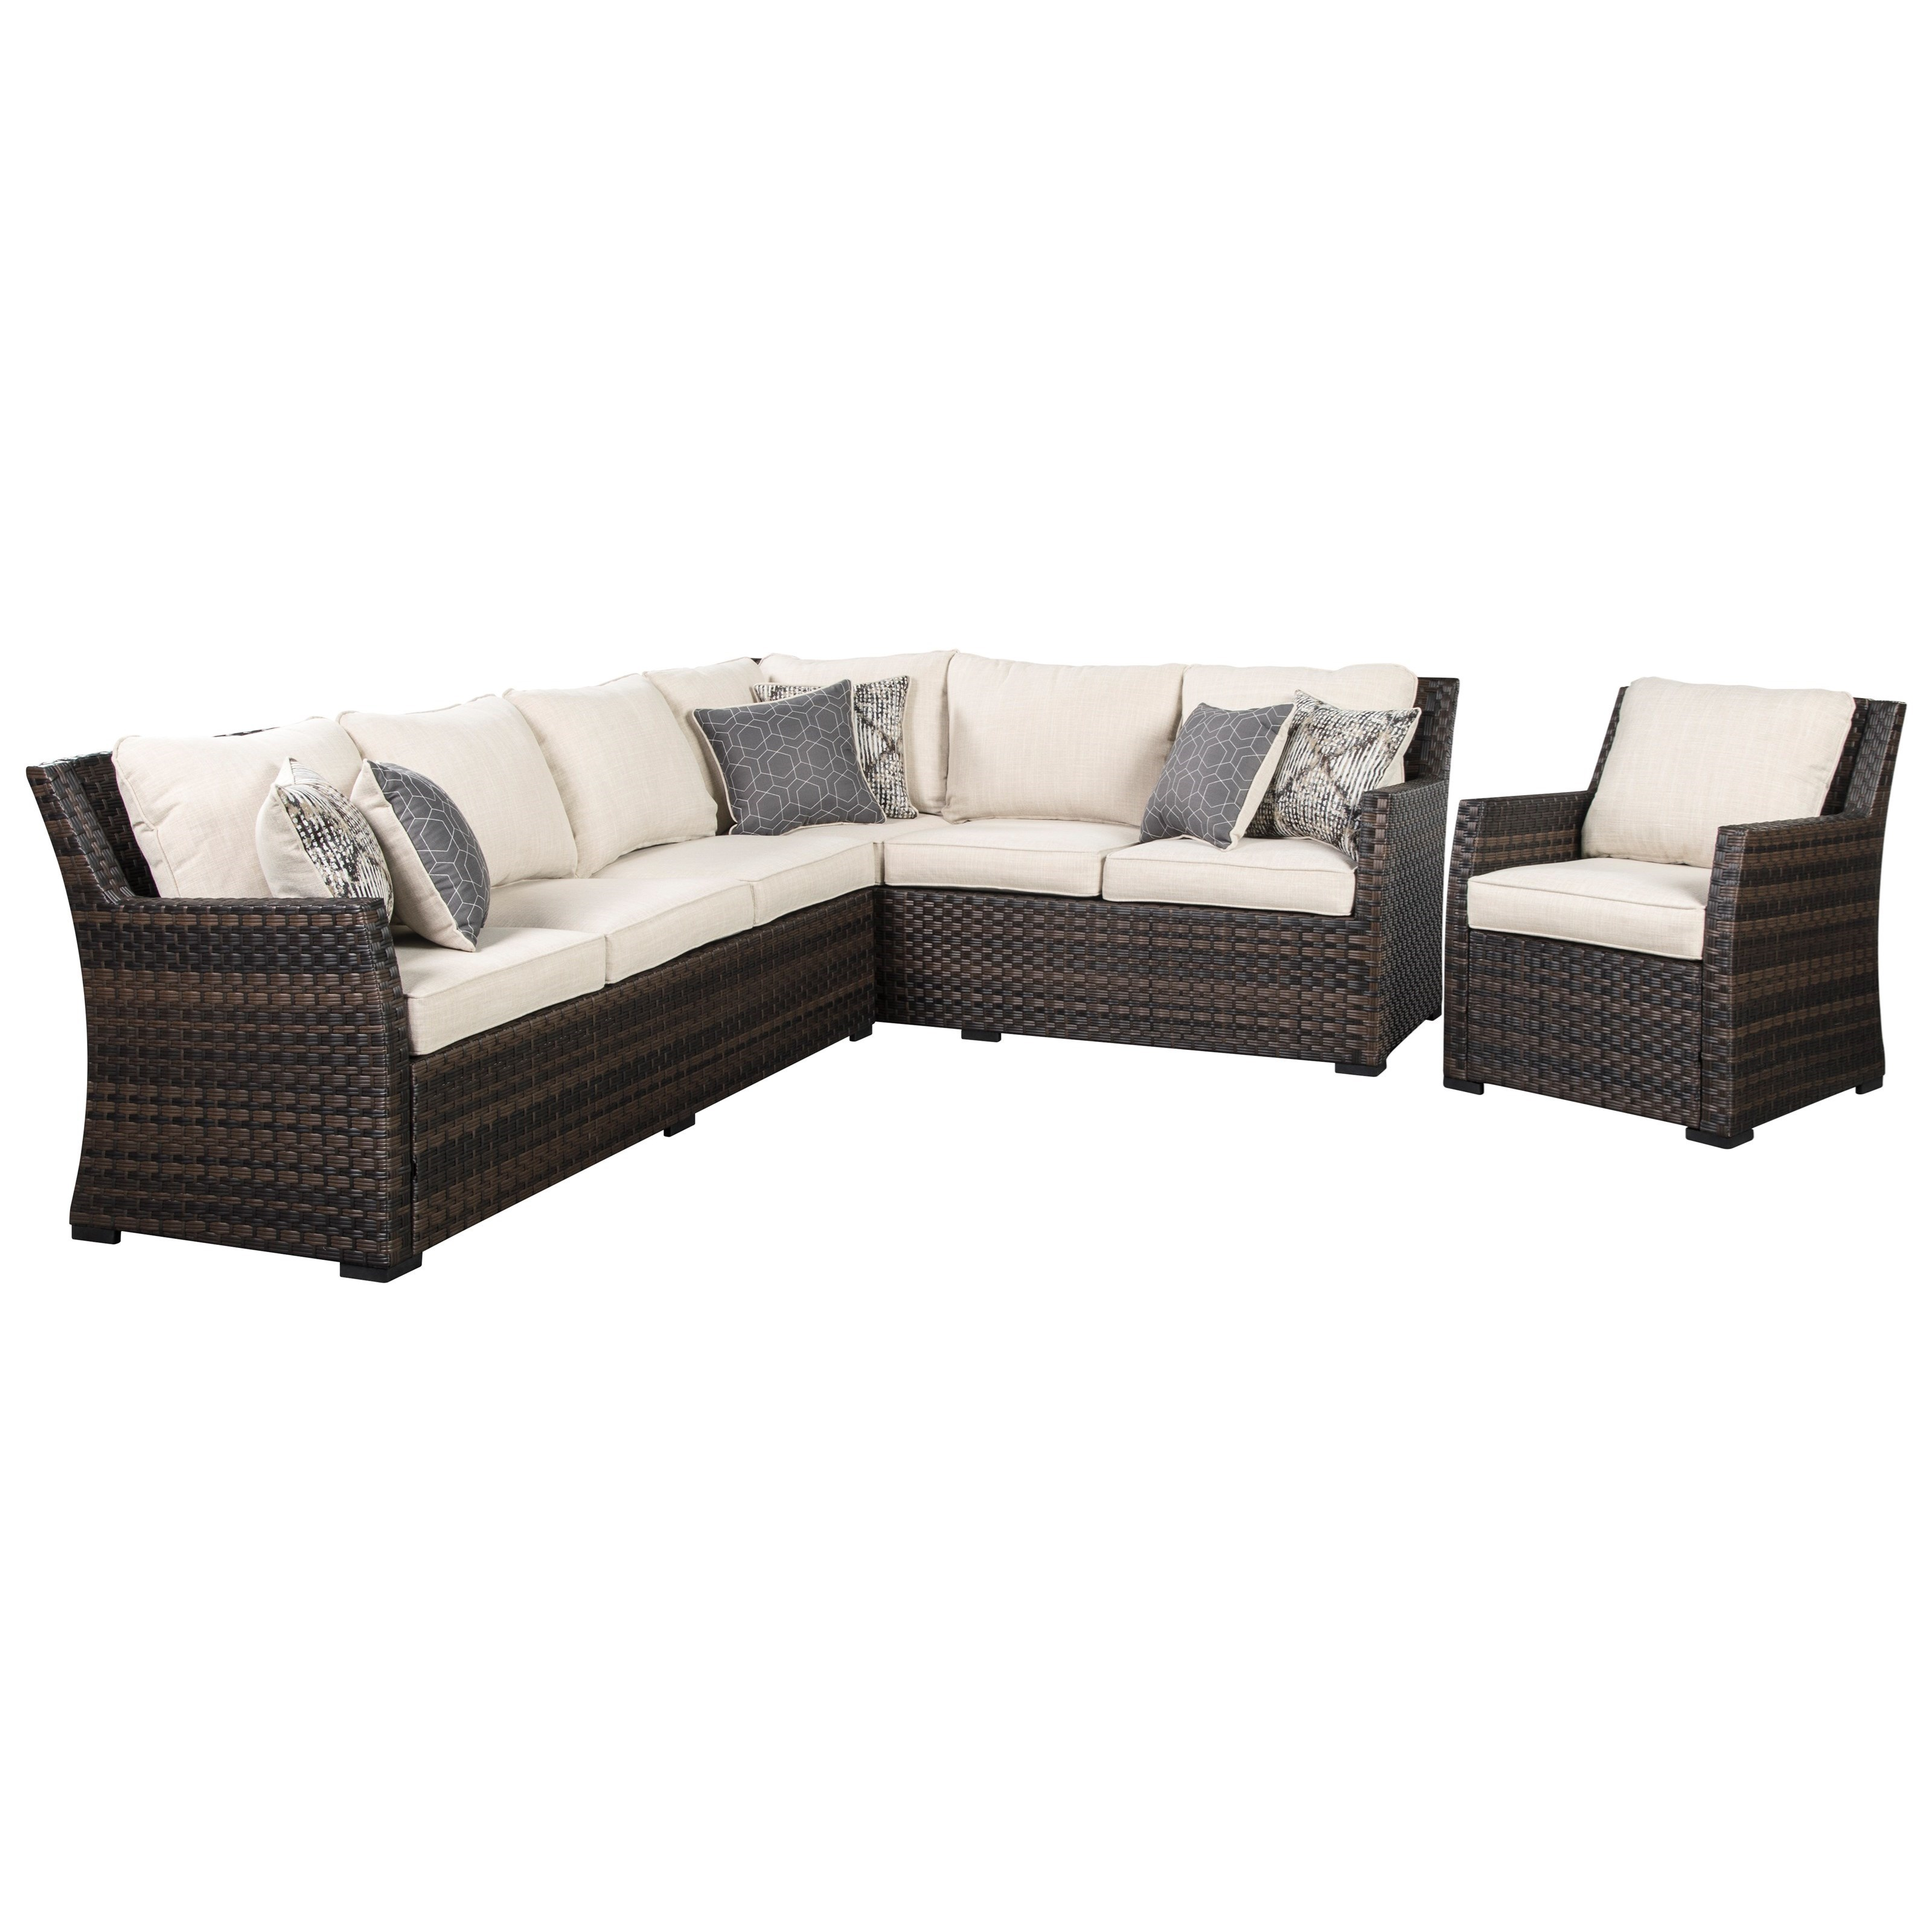 Outdoor 2-Piece Sectional & Lounge Chair Set